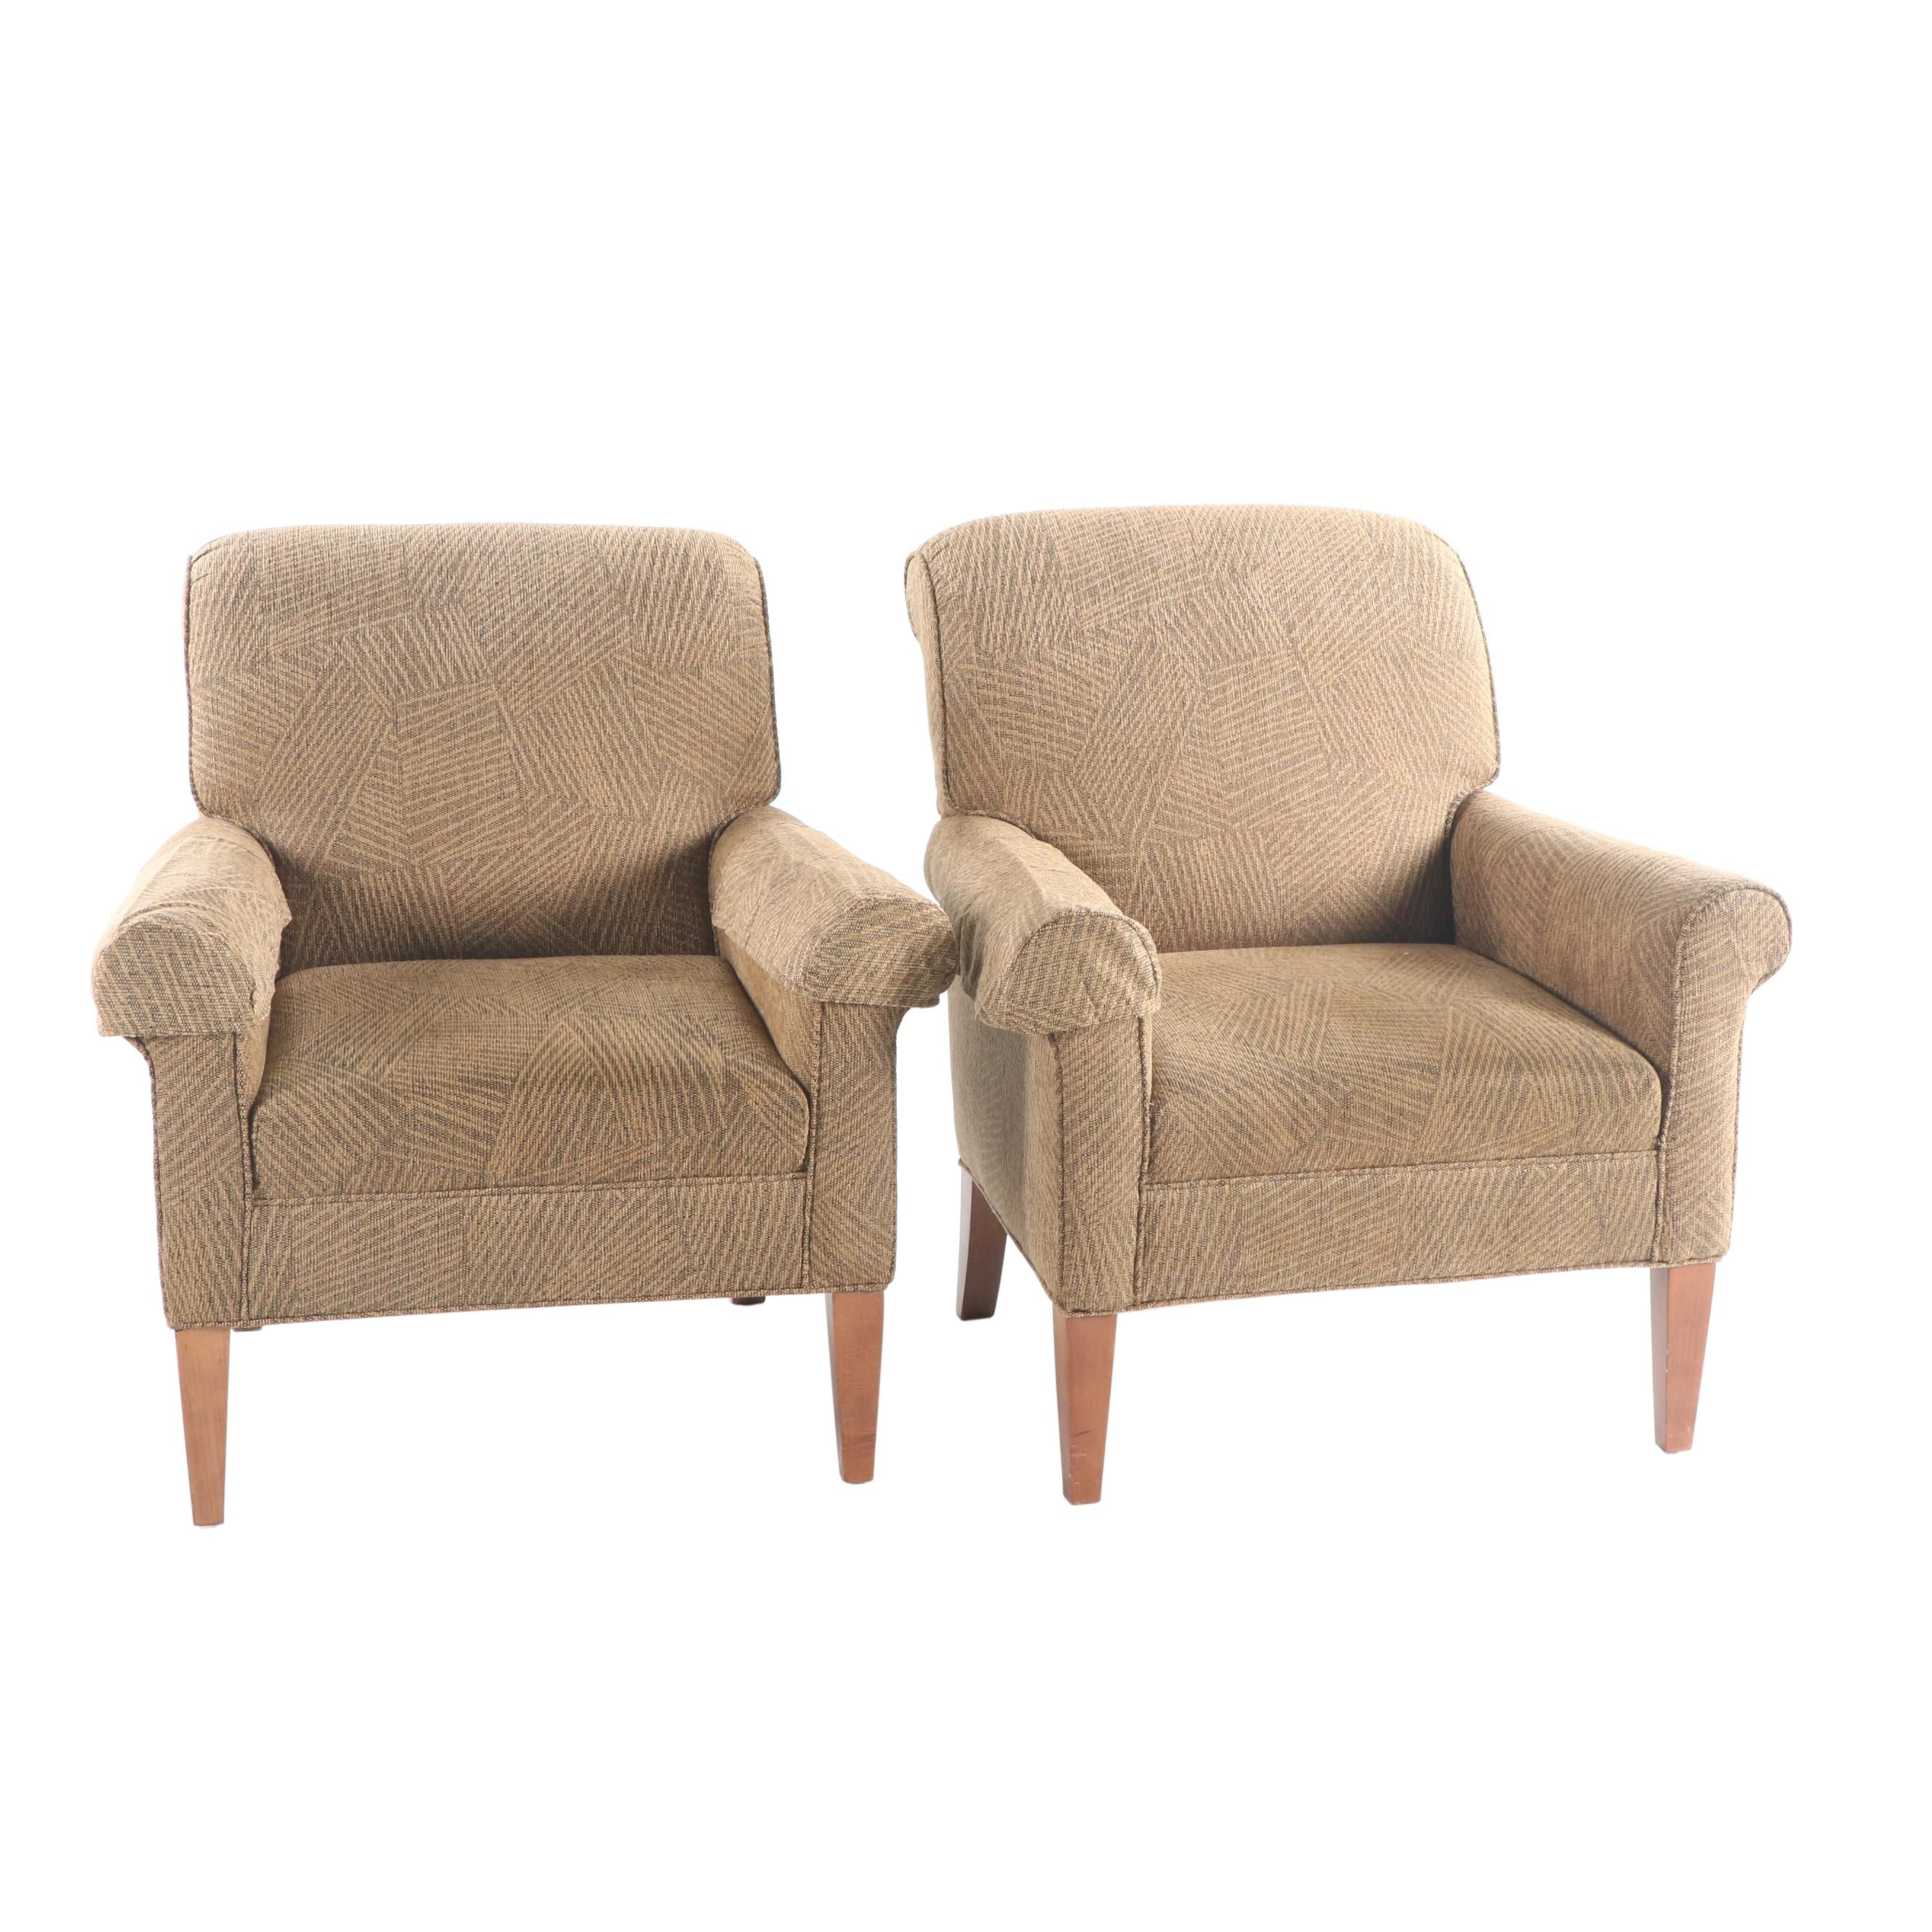 Upholstered Armchairs by Flexsteel Industries, 21st Century